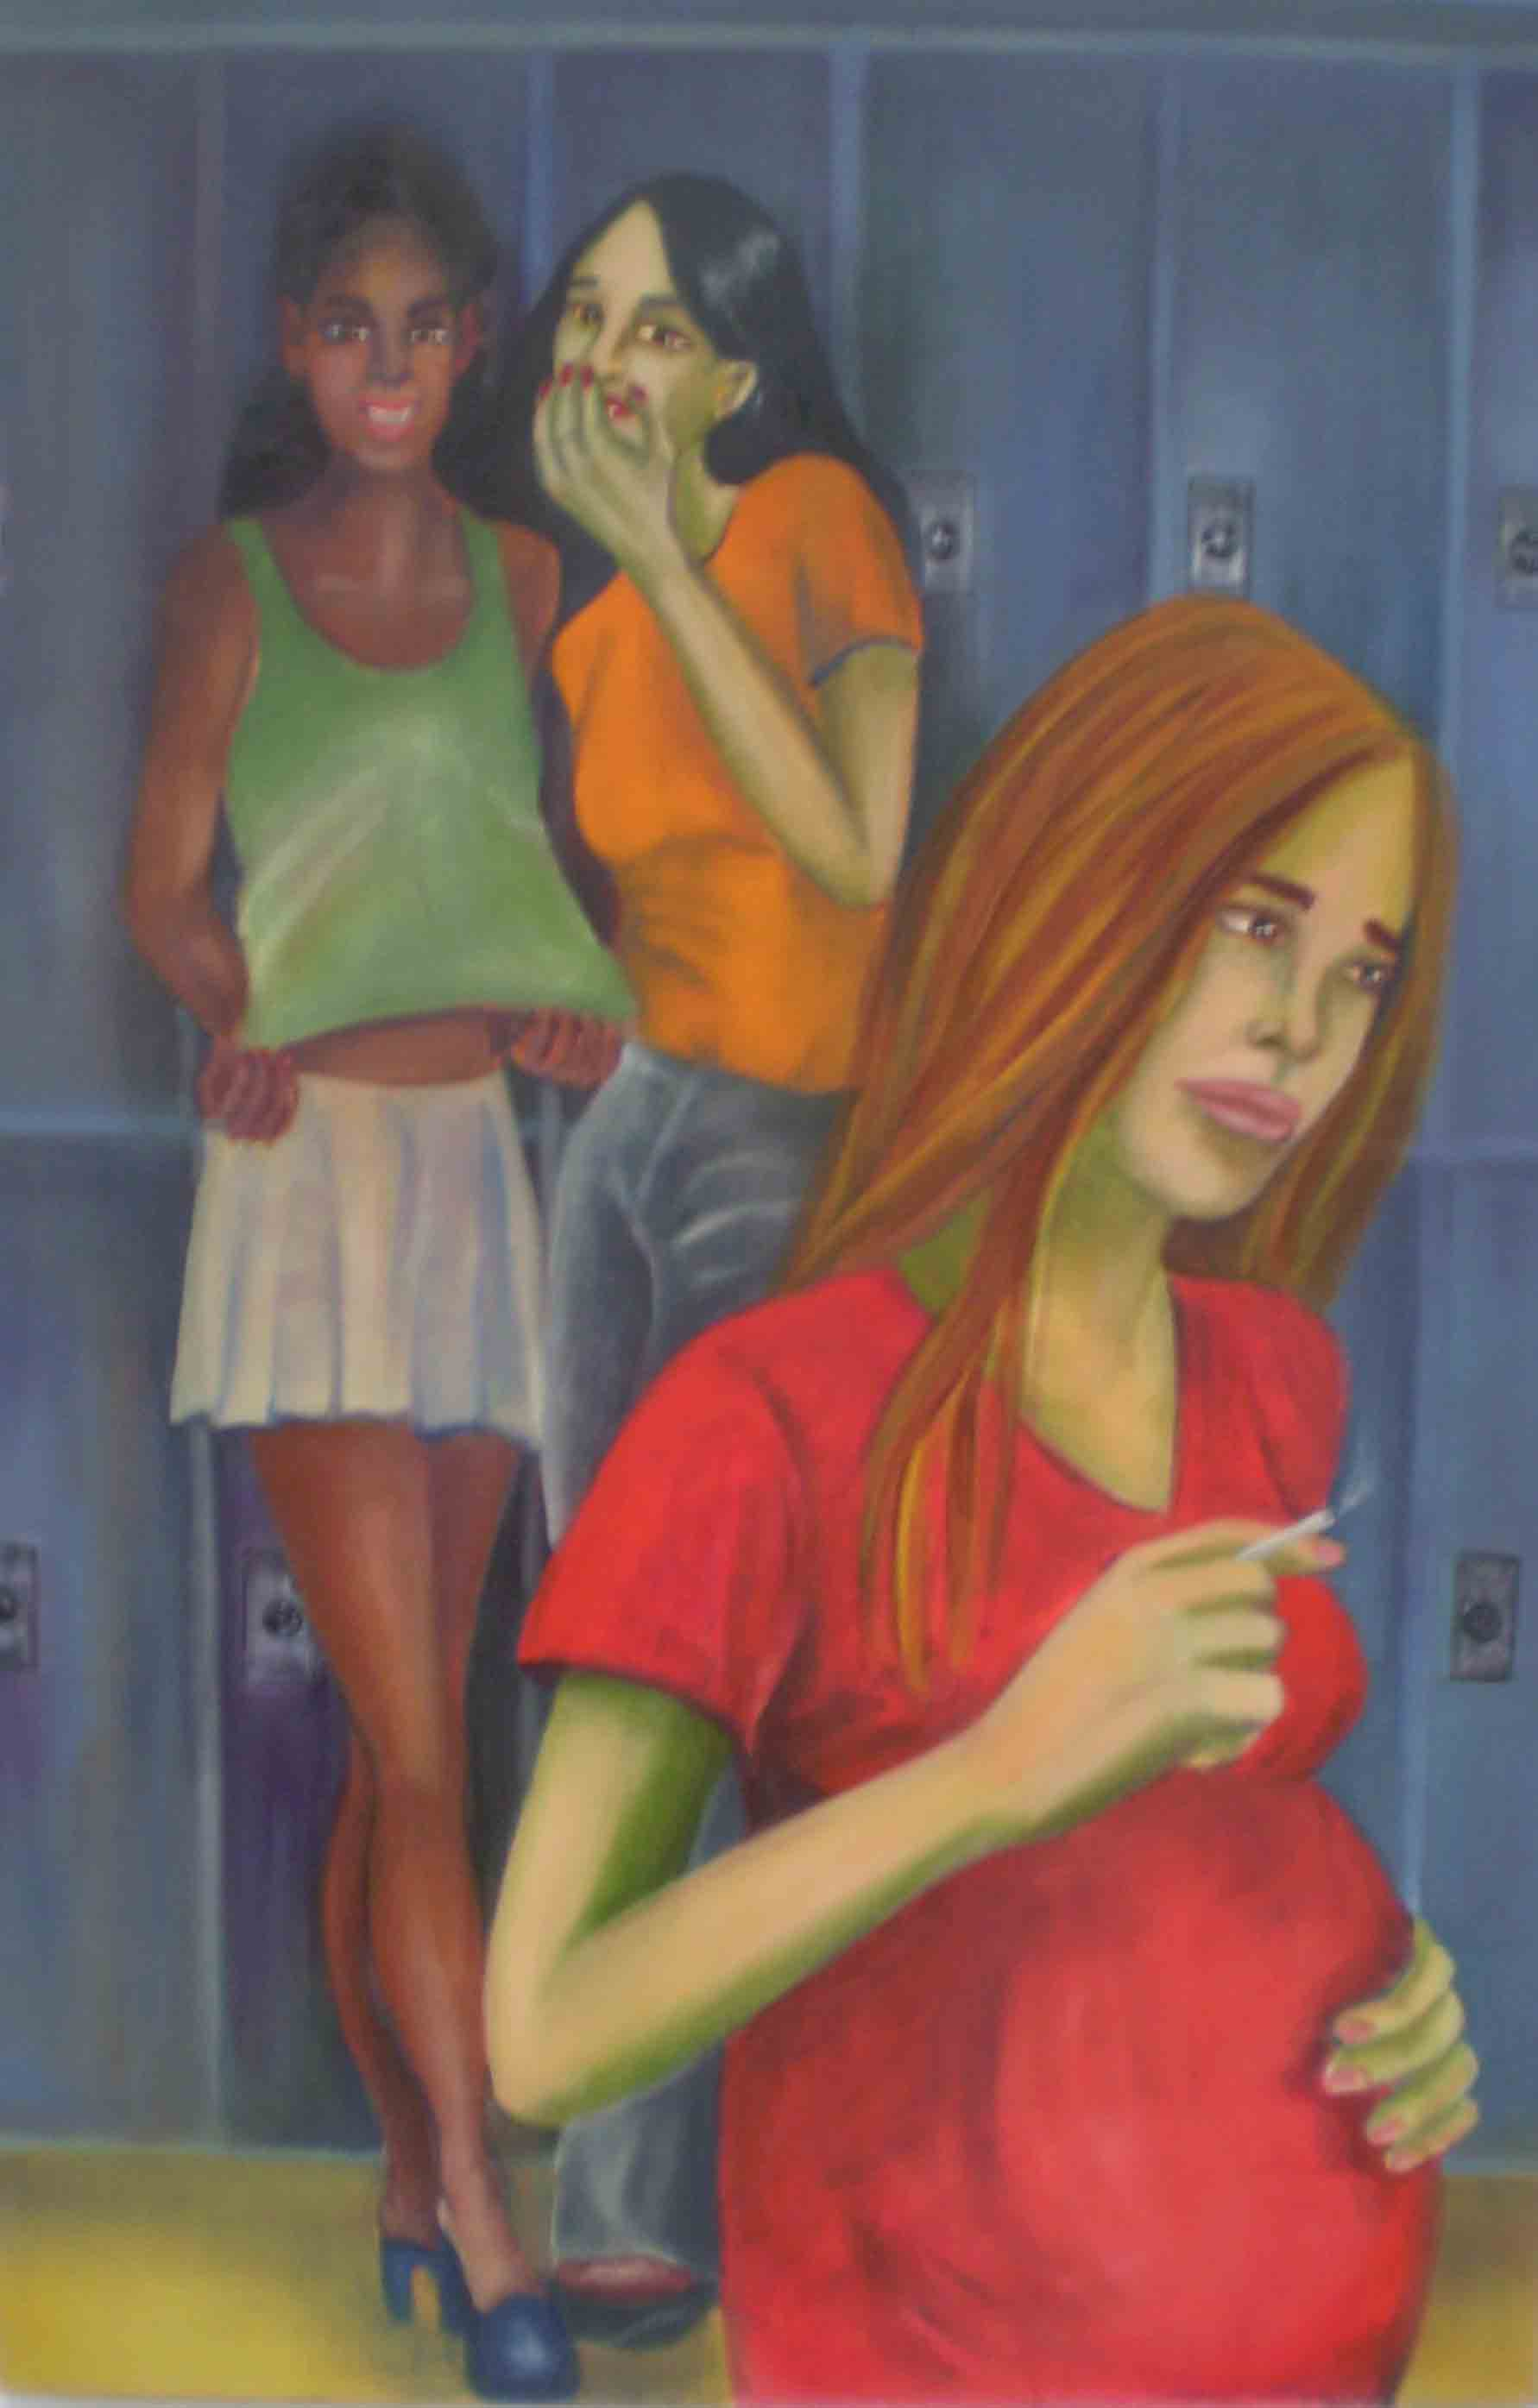 teen age pregnancy social issue Most teenage mothers go through psychological issues in the form of denial, guilt and narcissism read about them in detail to cope with them better.